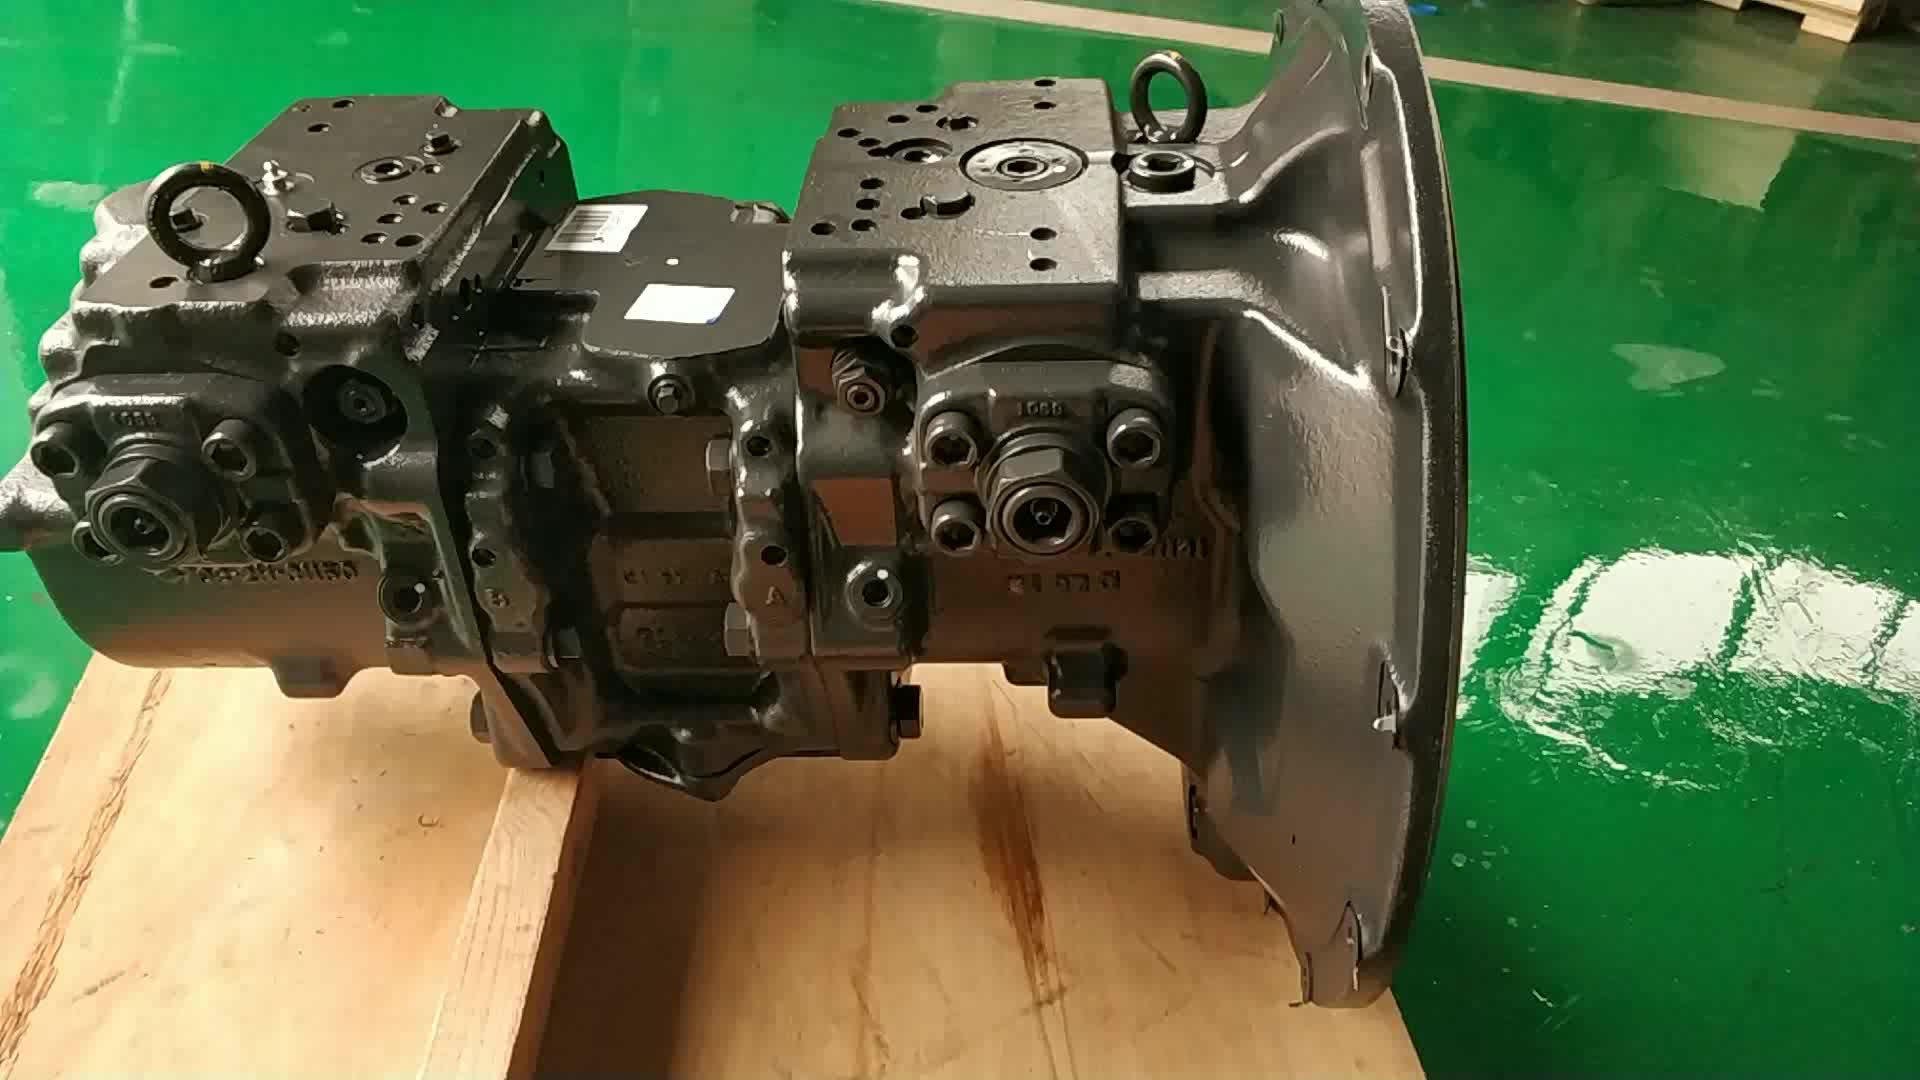 Genuine new PC360-7 PC350LC-7 main pump assembly 708-2G-00023 hydraulic pump